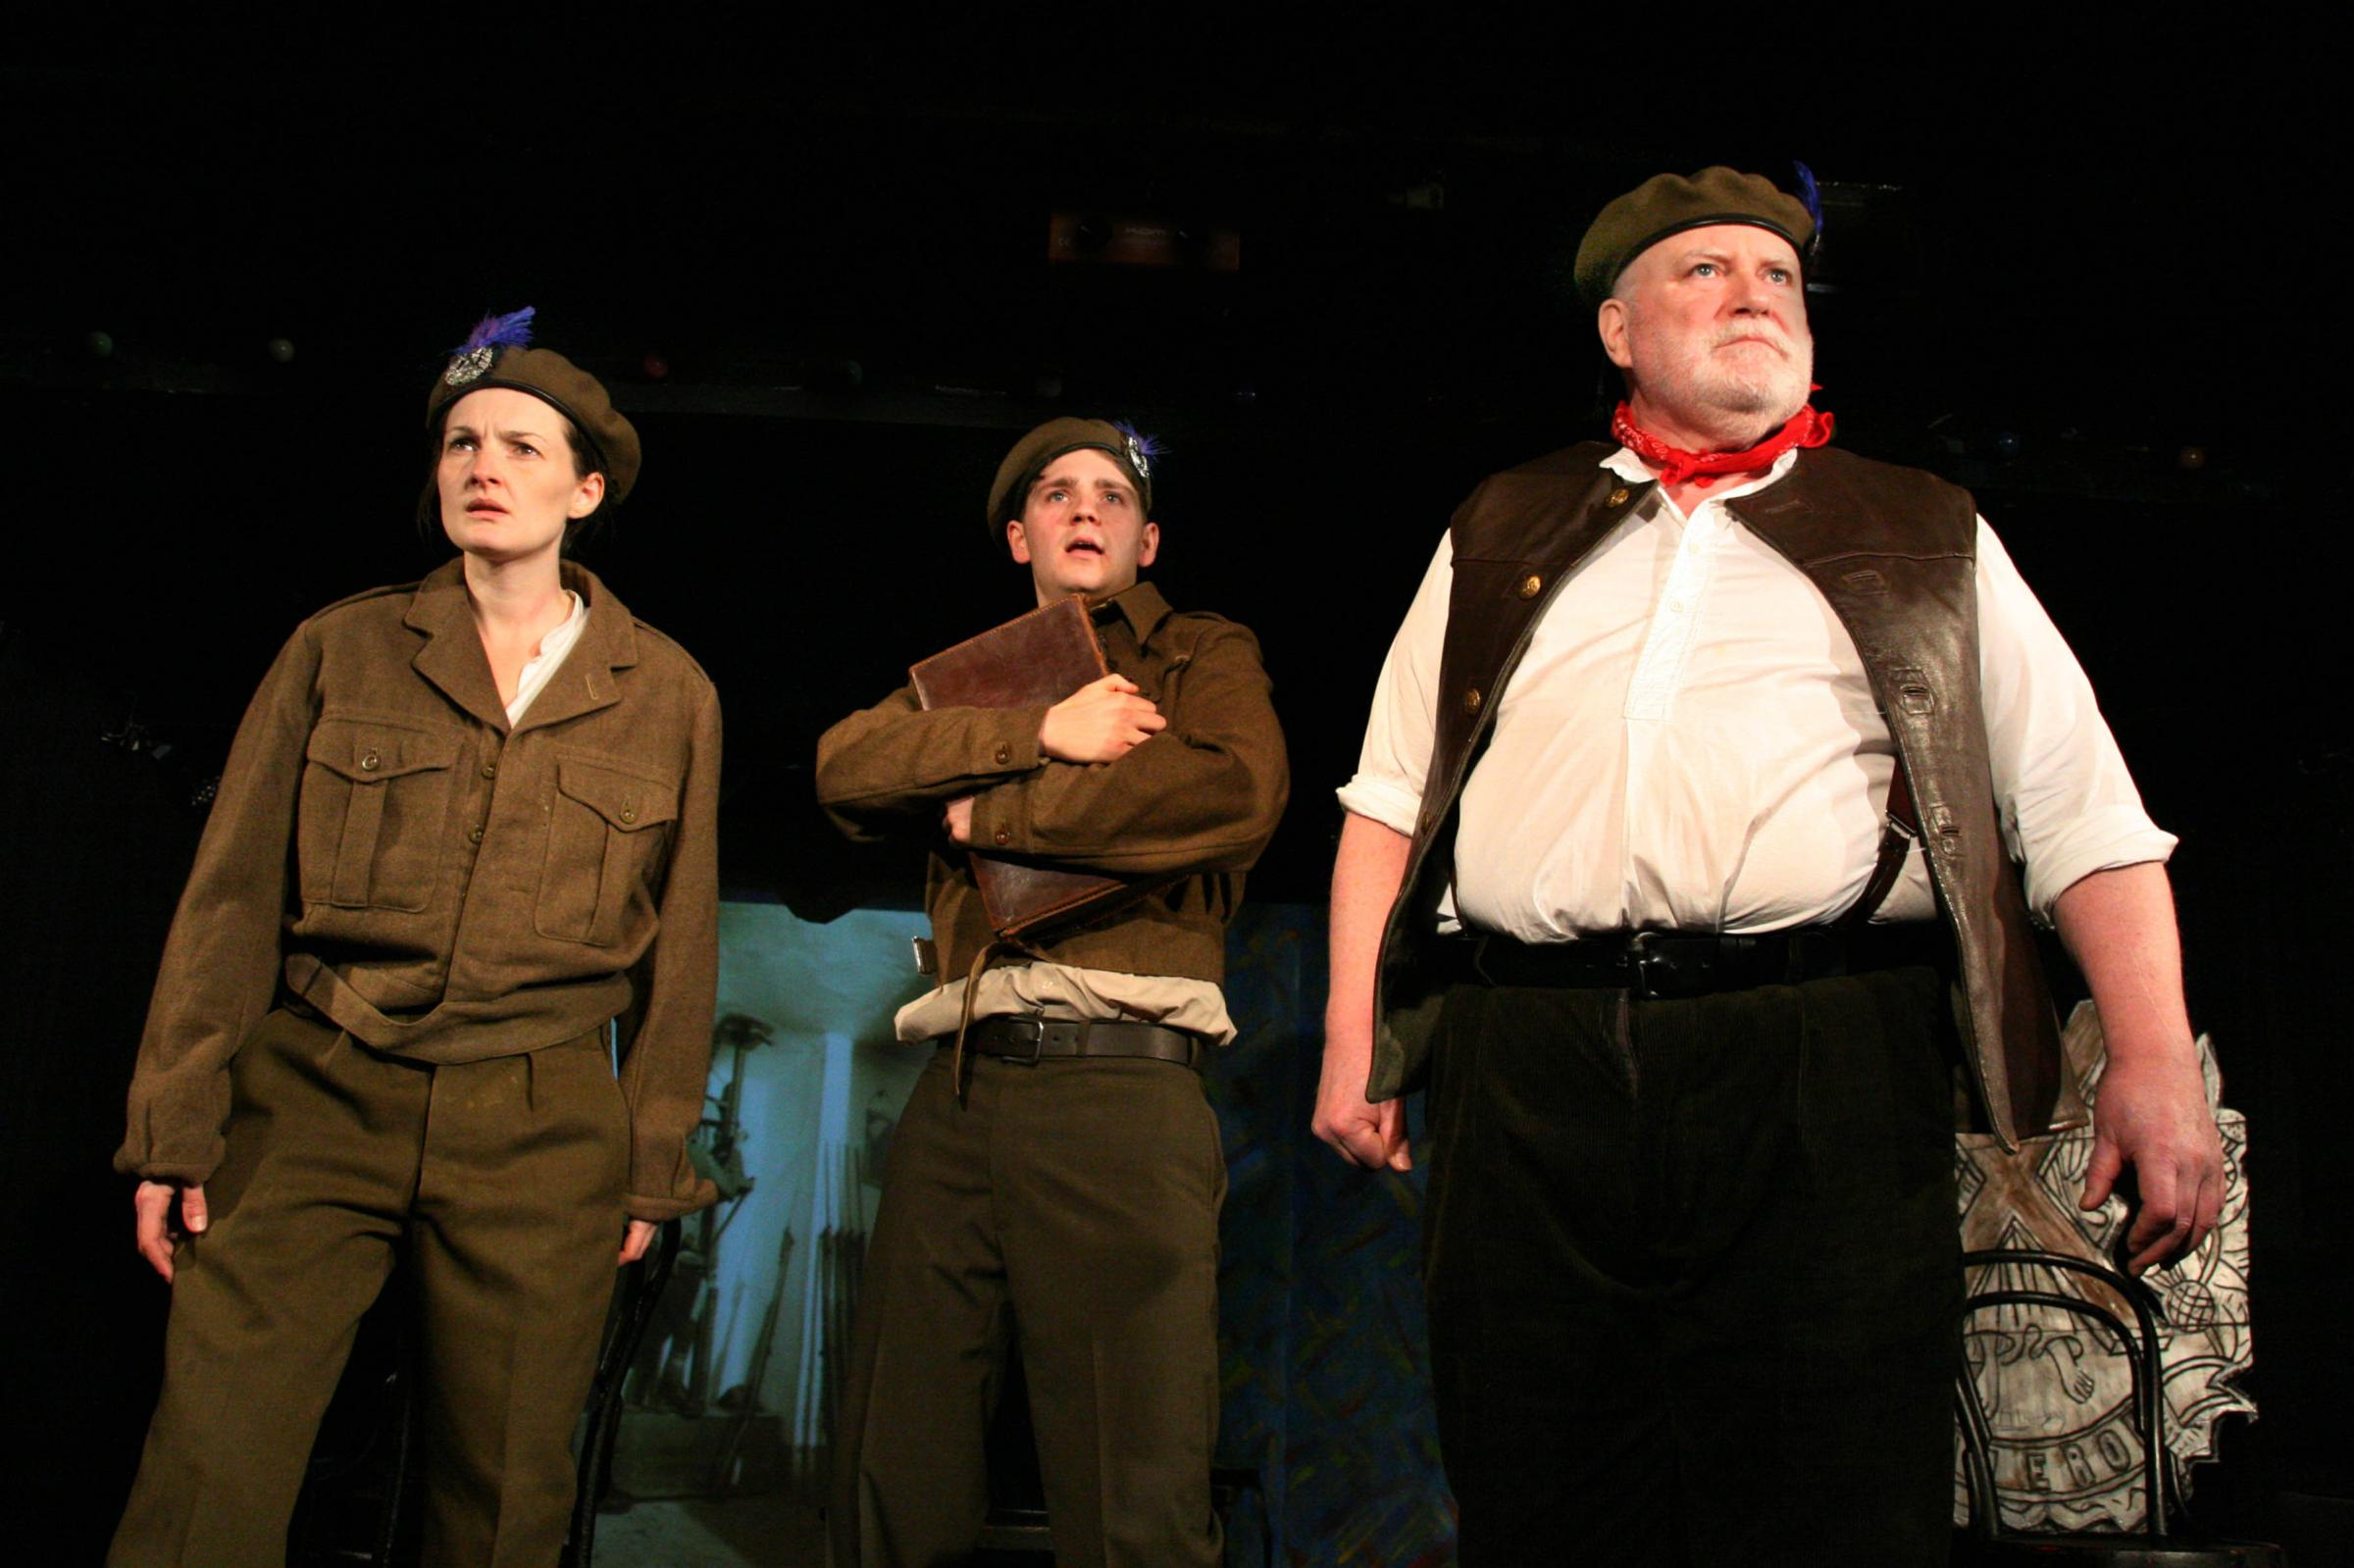 Oran Mor Anna Saxberg, James  Rottger, Ron Donachie in The Beaches of Valery, written and directed by Stuart Hepburn.